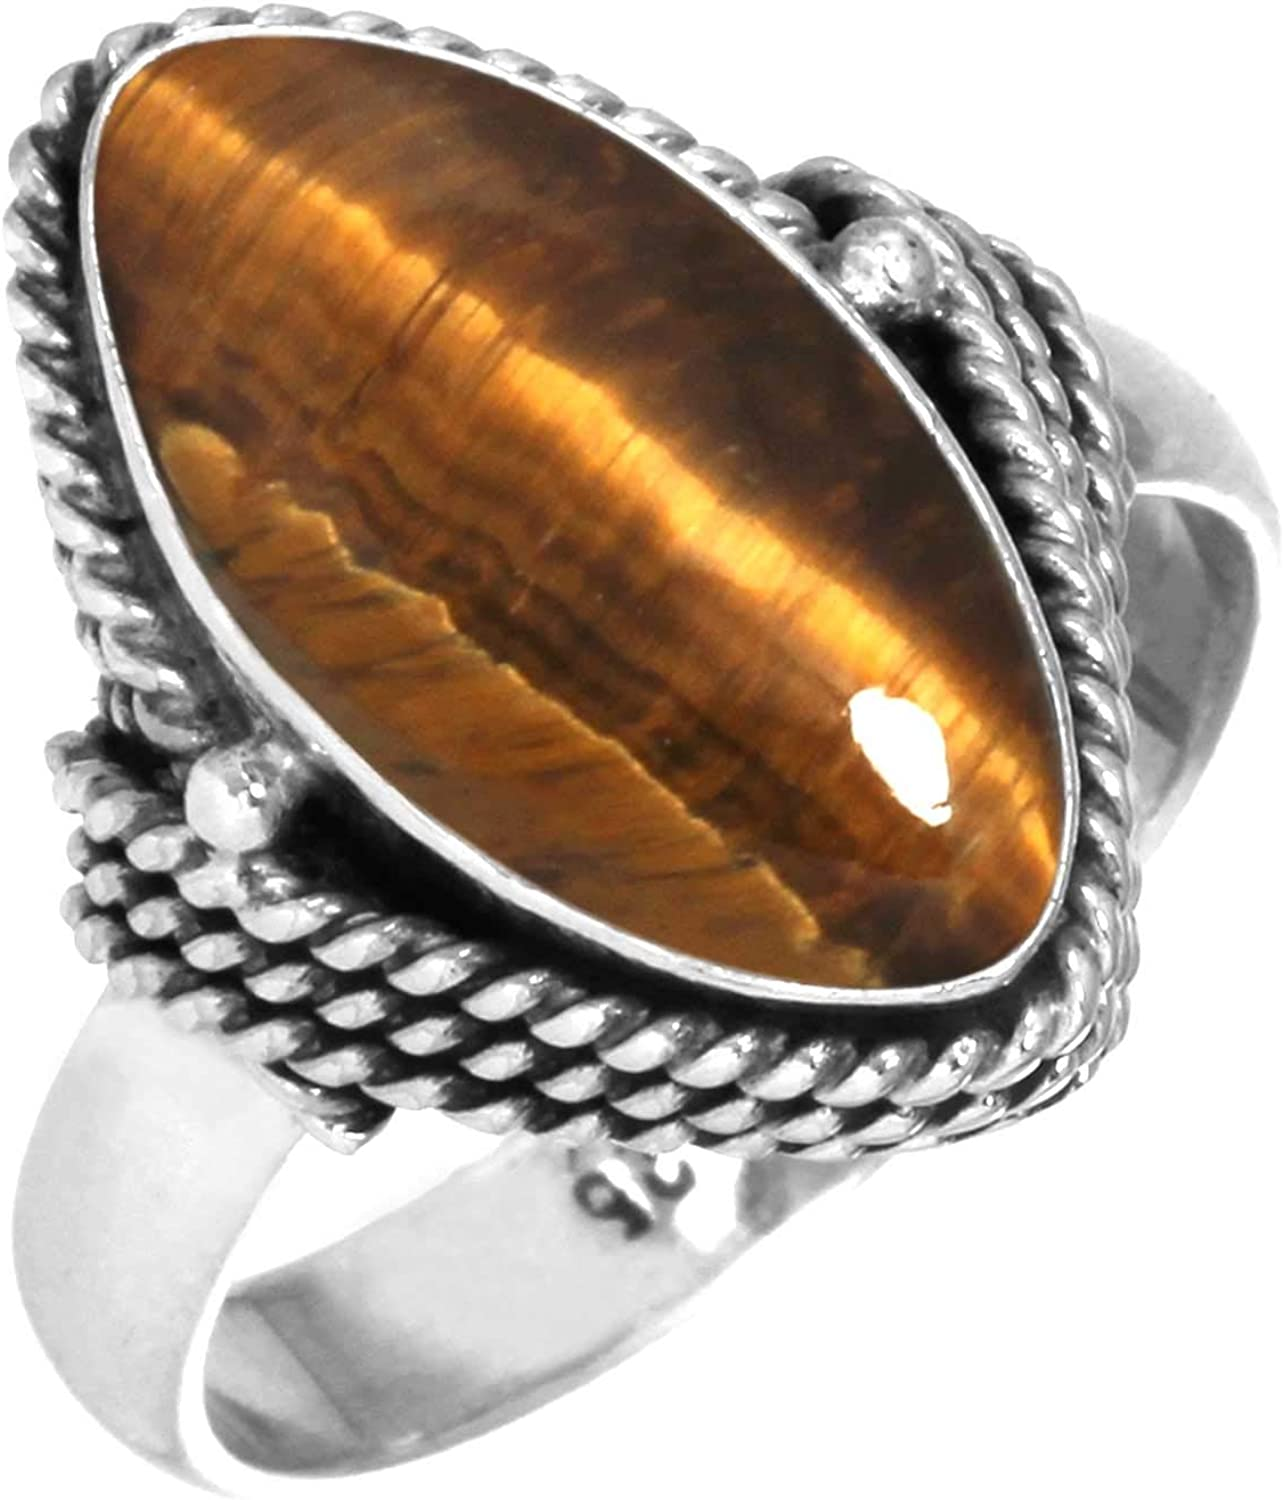 JEWELOPORIUM Solid 925 Sterling Silver Gemstone fo Ring Handmade Limited All items in the store price